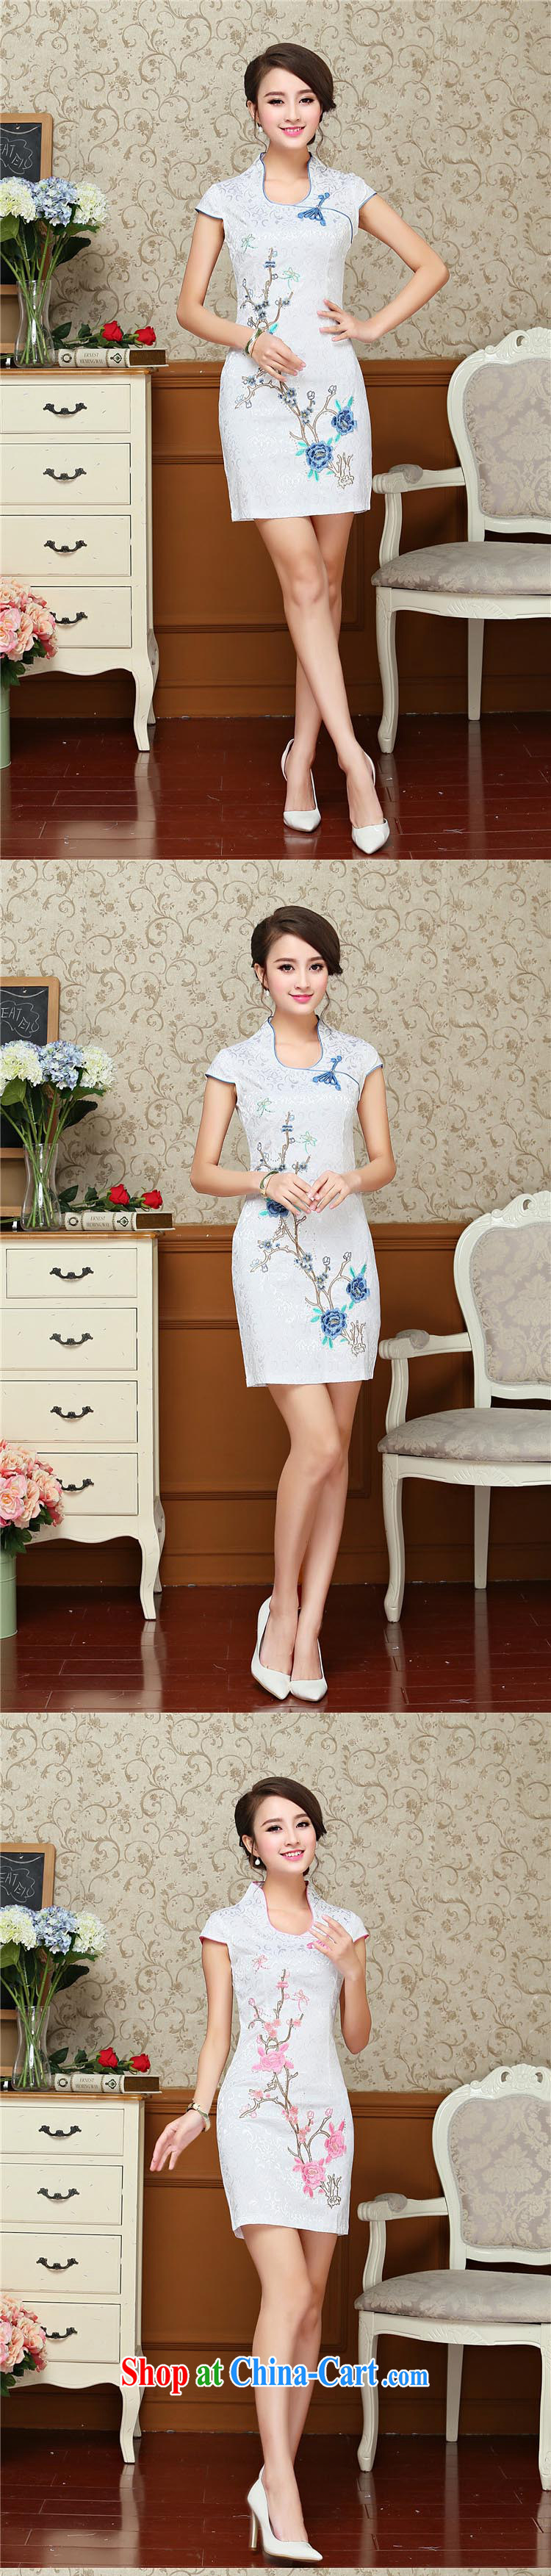 light at the Chinese antique dresses summer white blue embroidery cheongsam dress improved daily female Chinese AQE 618 blue XXL pictures, price, brand platters! Elections are good character, the national distribution, so why buy now enjoy more preferential! Health